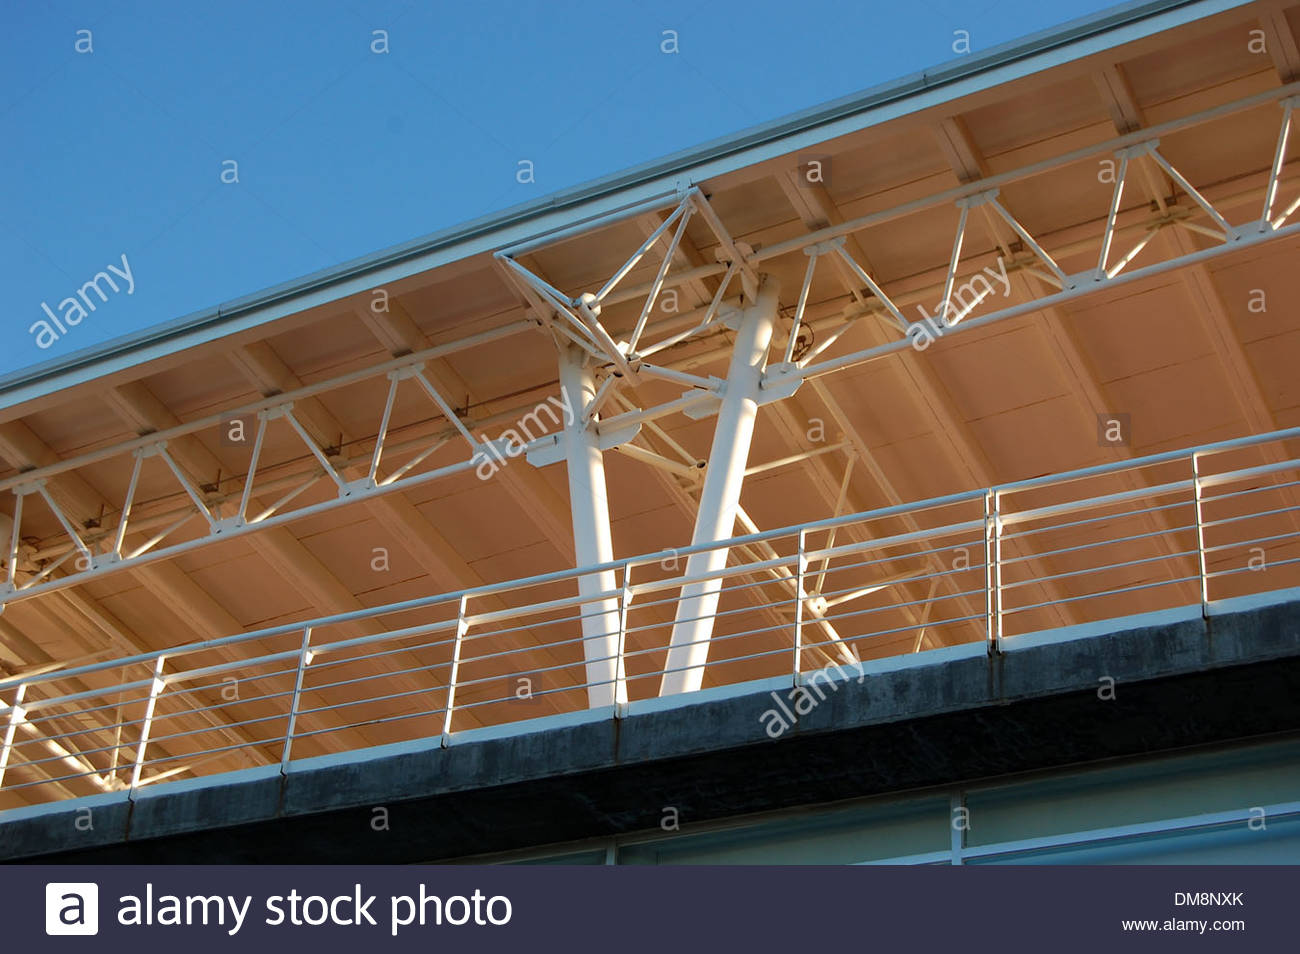 Contemporary Modern Architecture Design Steel Structure Building Stock Photo 64117051 Alamy